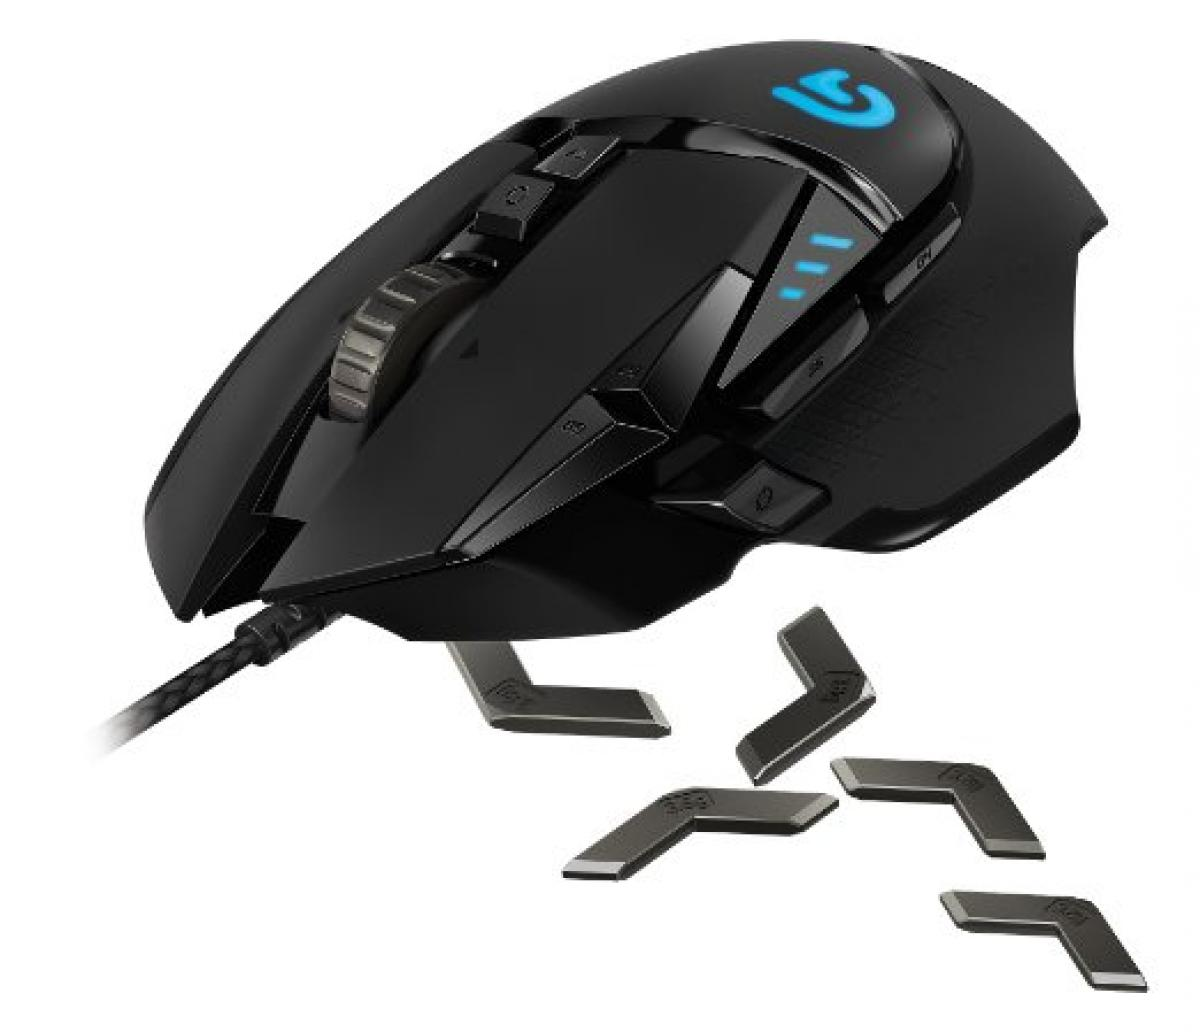 Logitech G502 Proteus Tunable Gaming Mouse